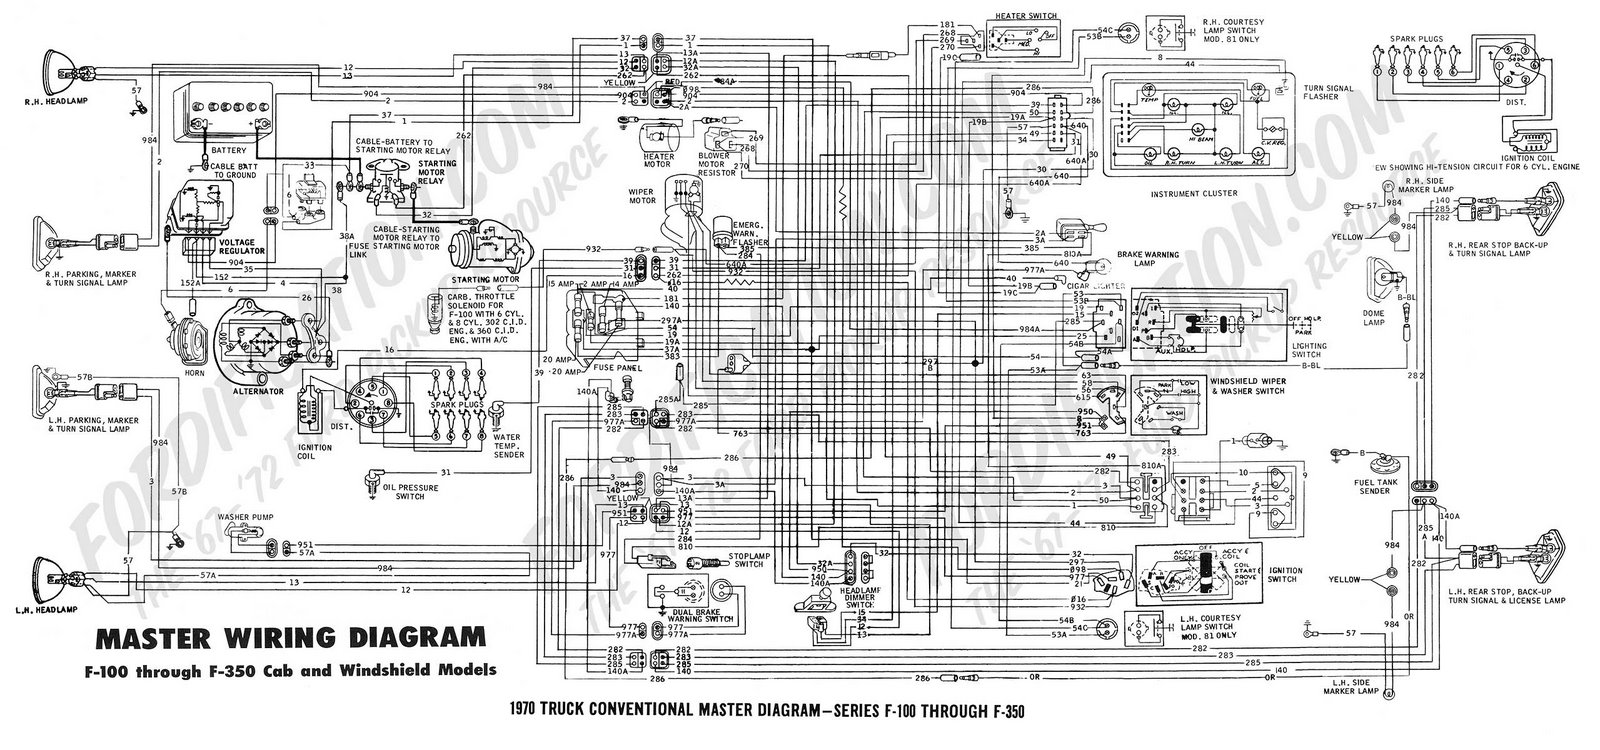 Truck Convencional Master Diagram Series F Through F on 2001 Toyota Tacoma Engine Diagram